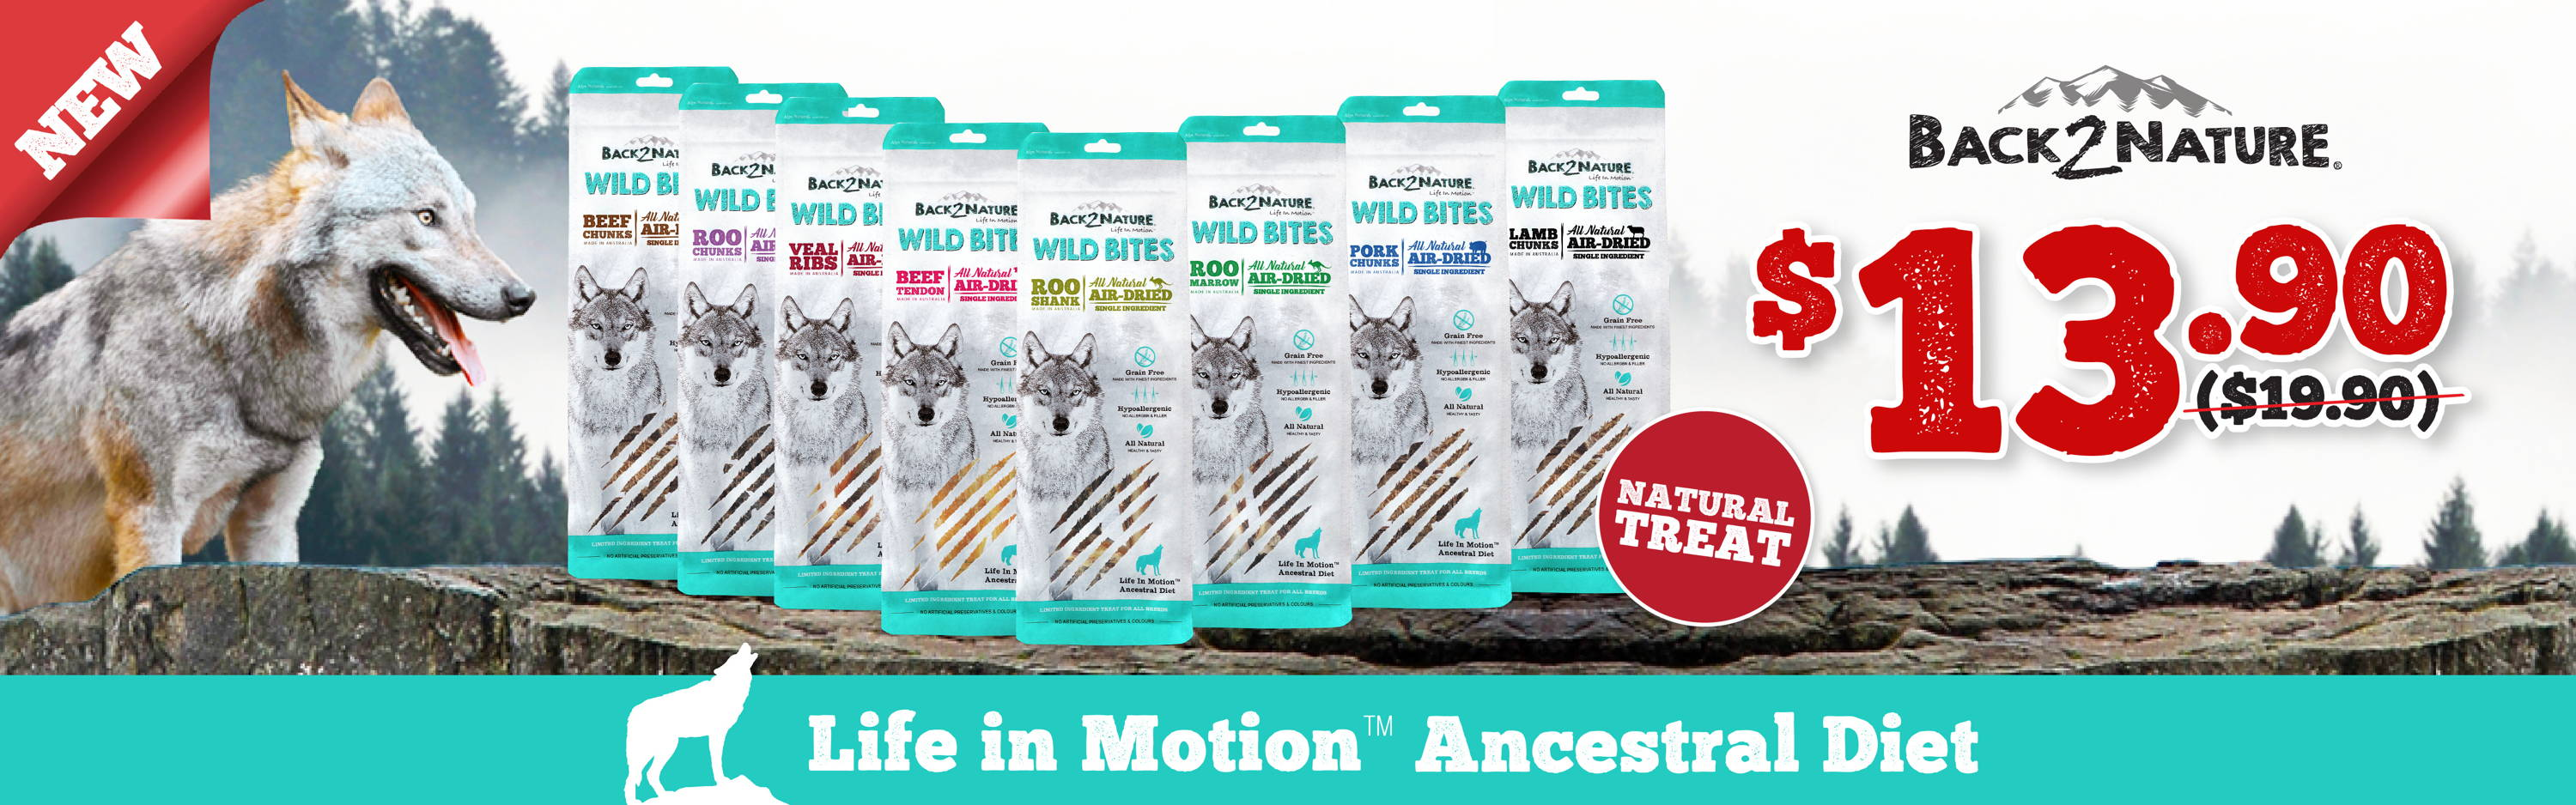 back2nature wild bites air-dried dog treats promotion banner 1